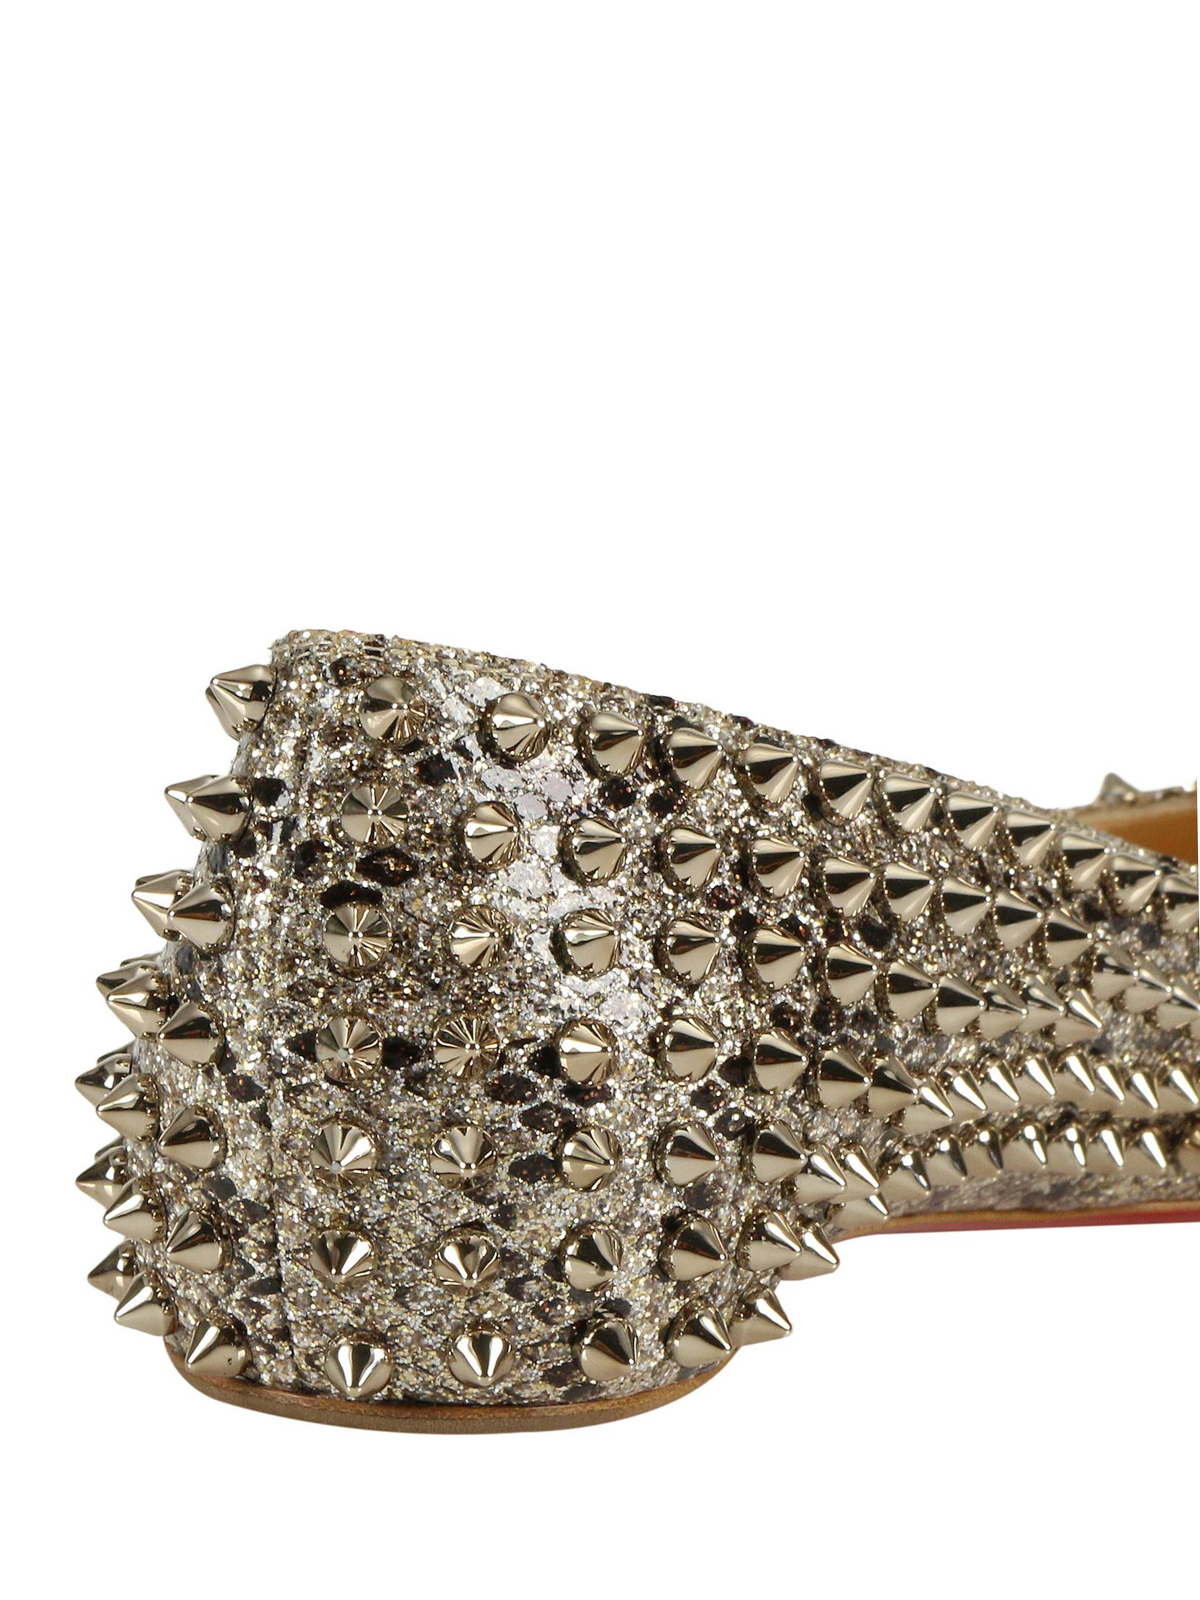 buy online 673aa 91702 Christian Louboutin - Follies Spikes ayers leather flats ...